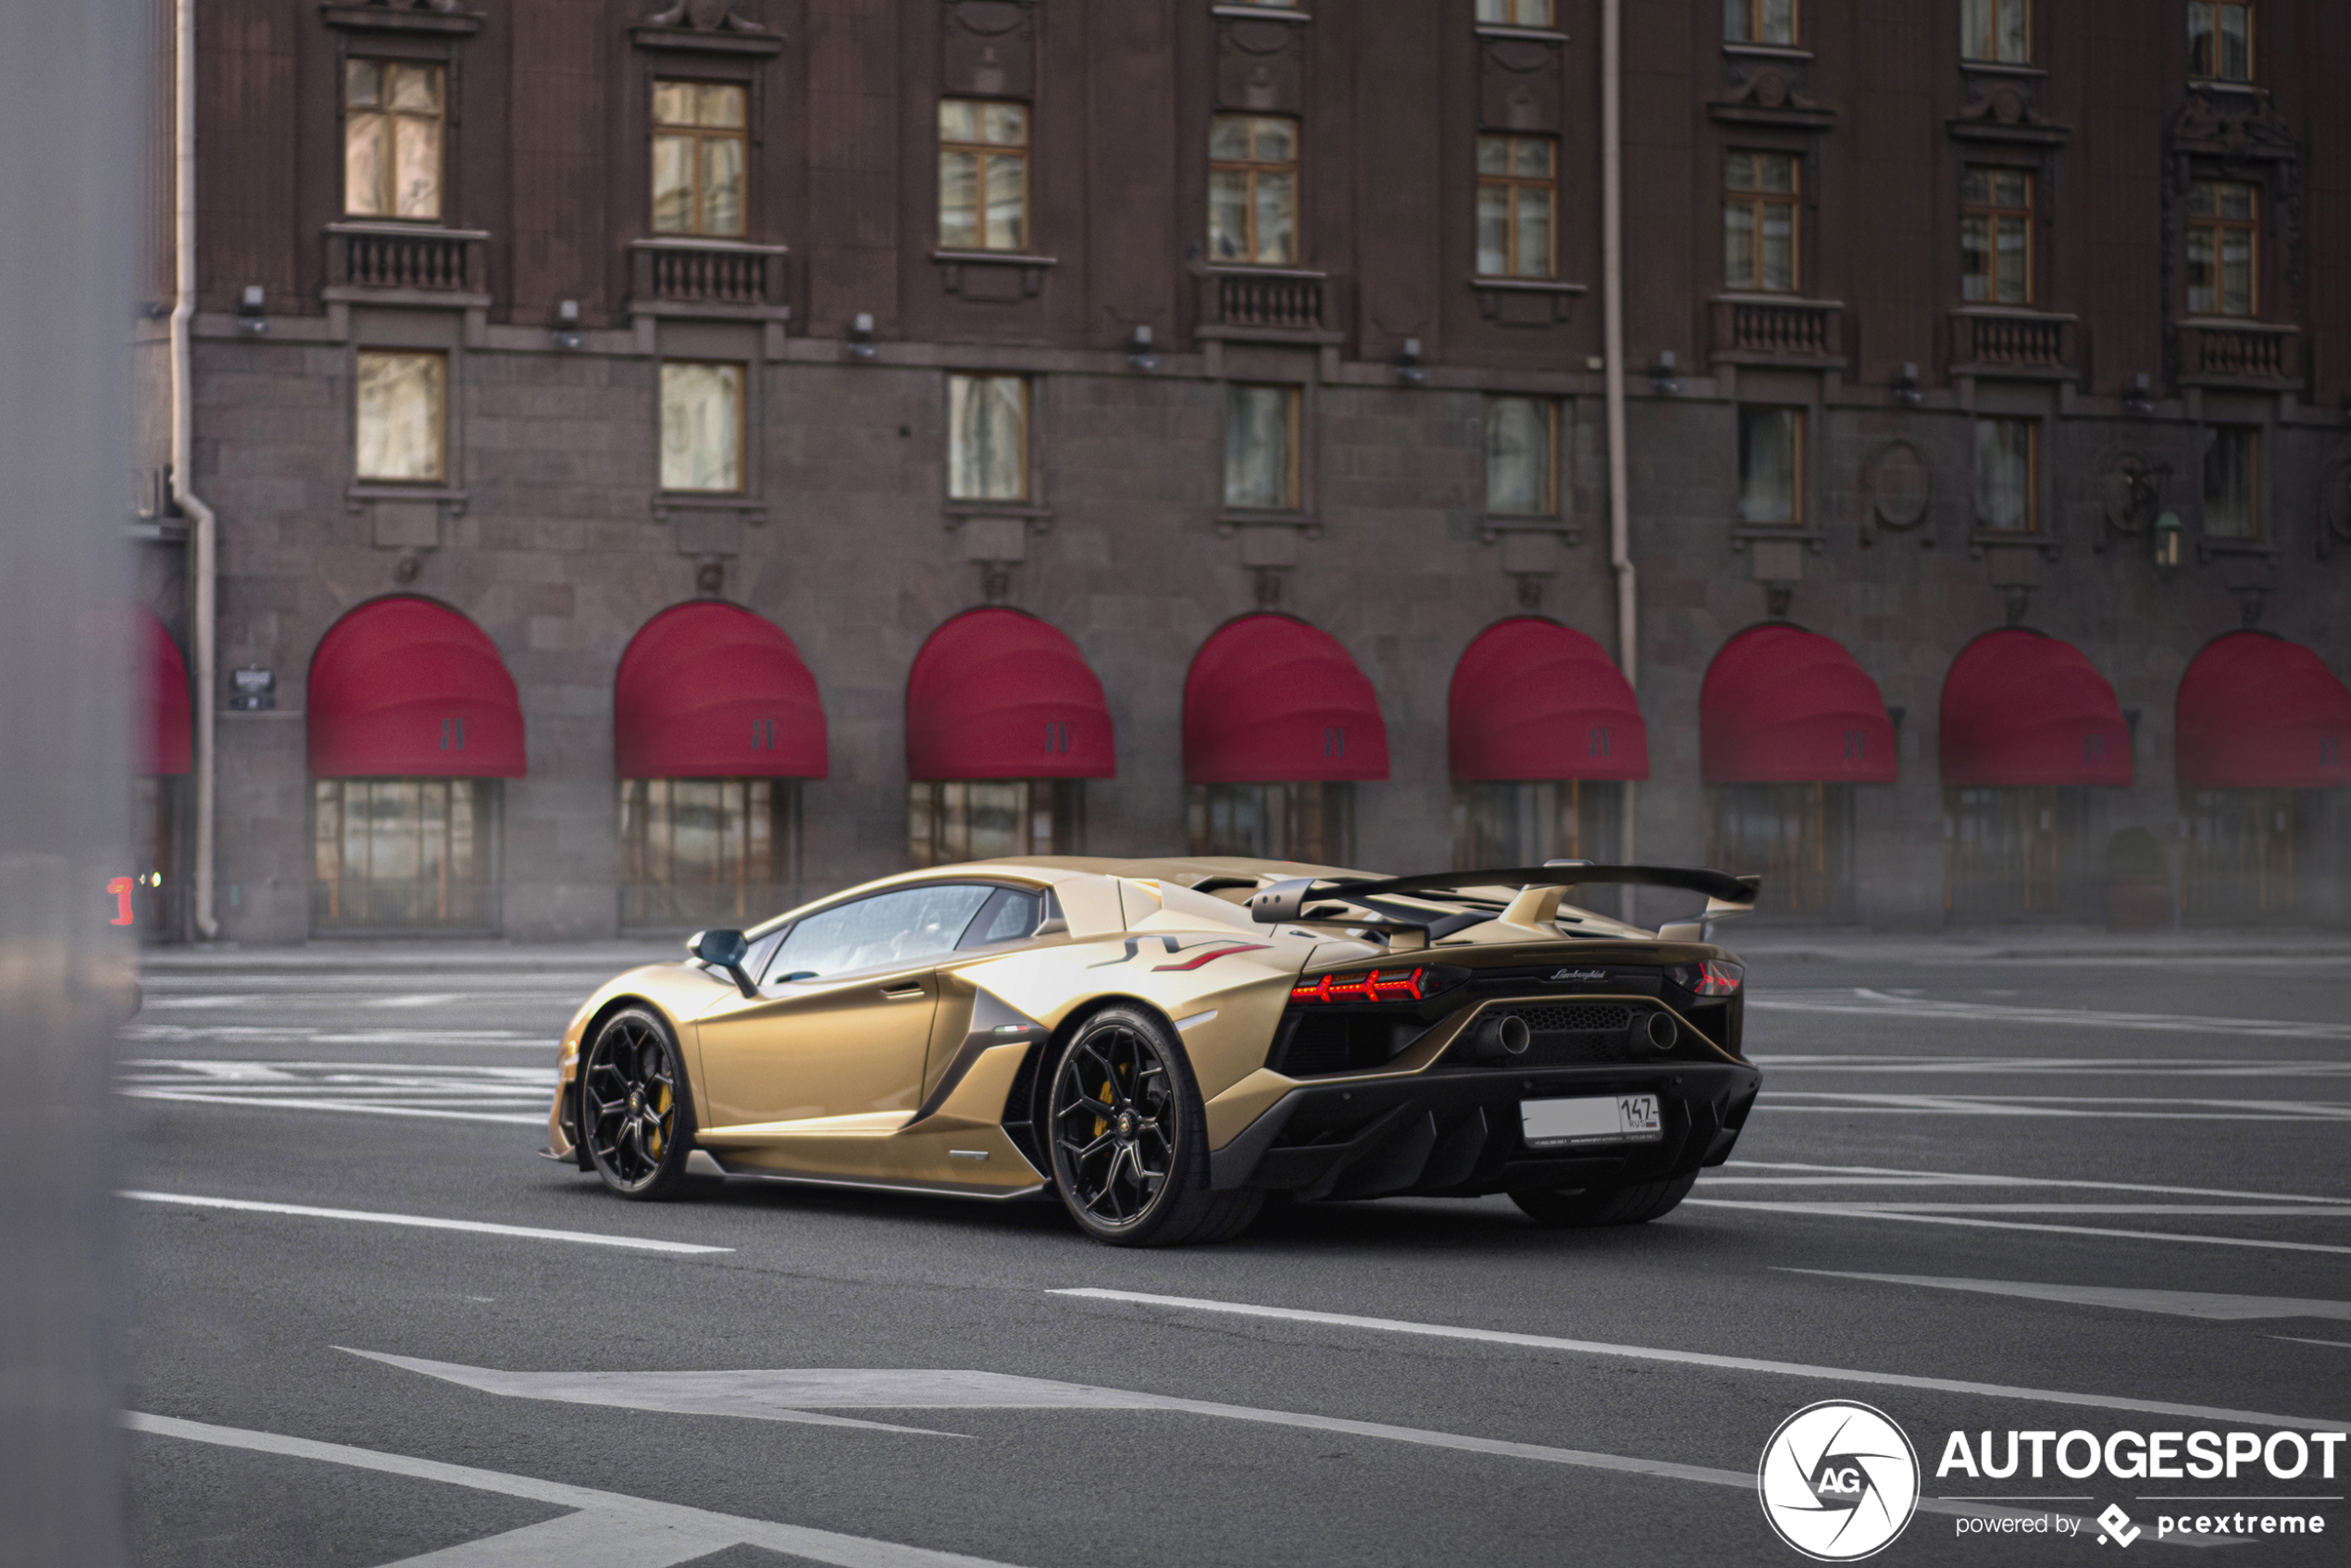 Oro Elios looks amazing on this Aventador SVJ